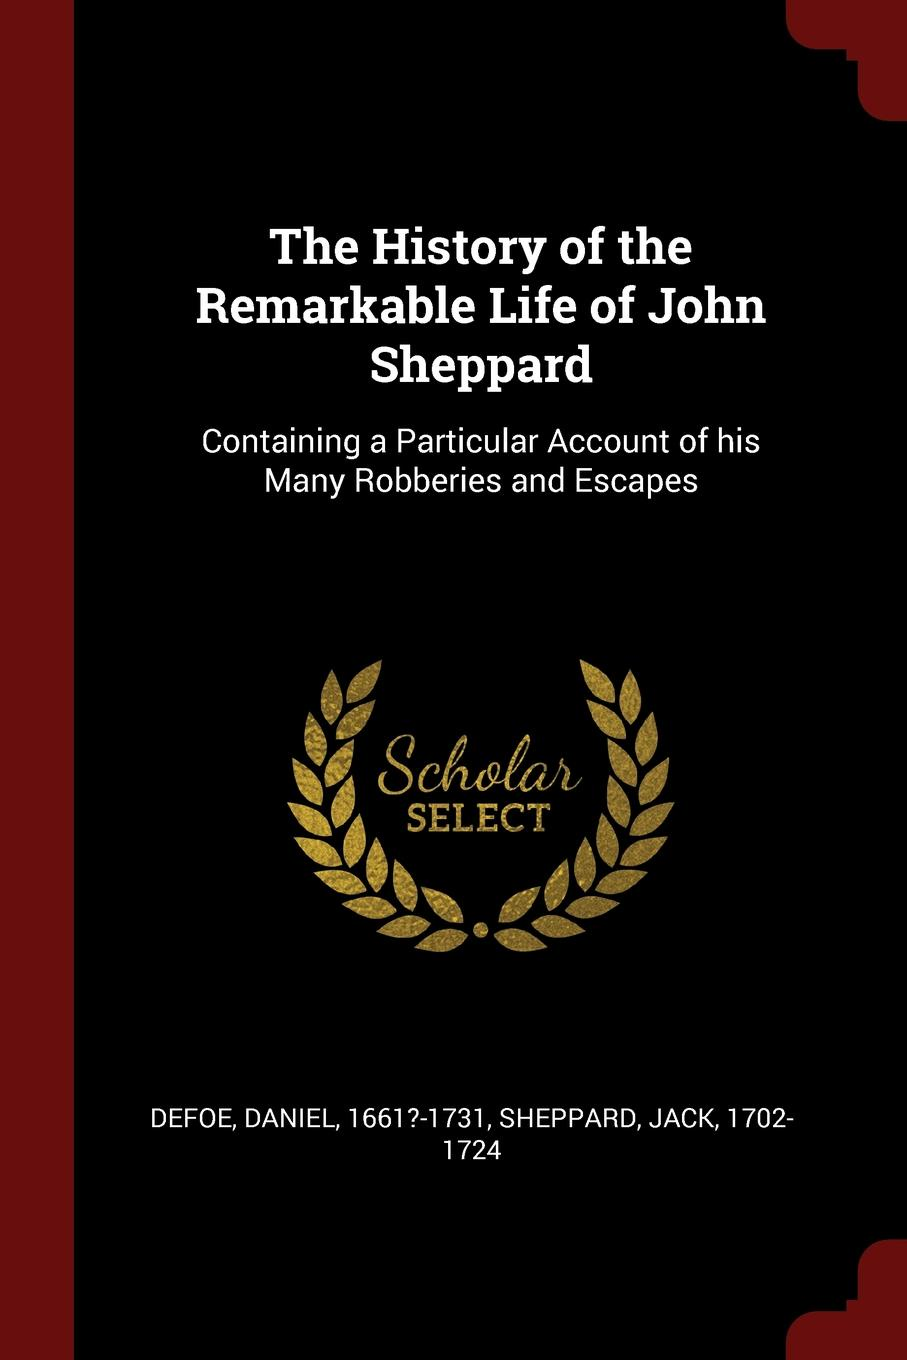 Daniel Defoe, Jack Sheppard The History of the Remarkable Life of John Sheppard. Containing a Particular Account of his Many Robberies and Escapes цена 2017